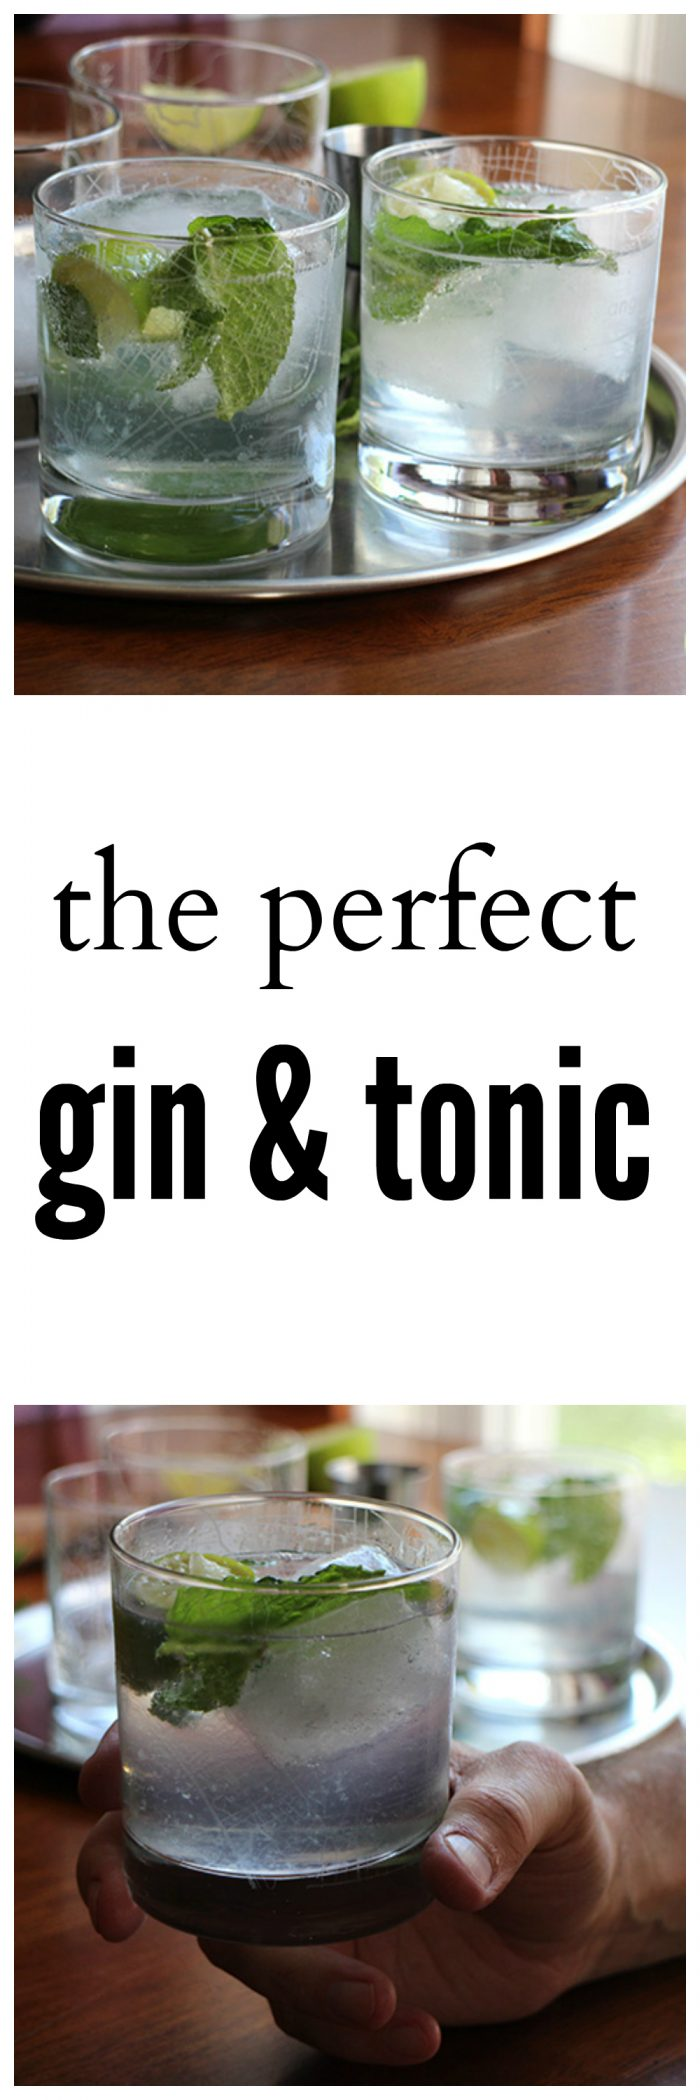 The perfect gin and tonic cocktail with fresh mint and lime | cadryskitchen.com